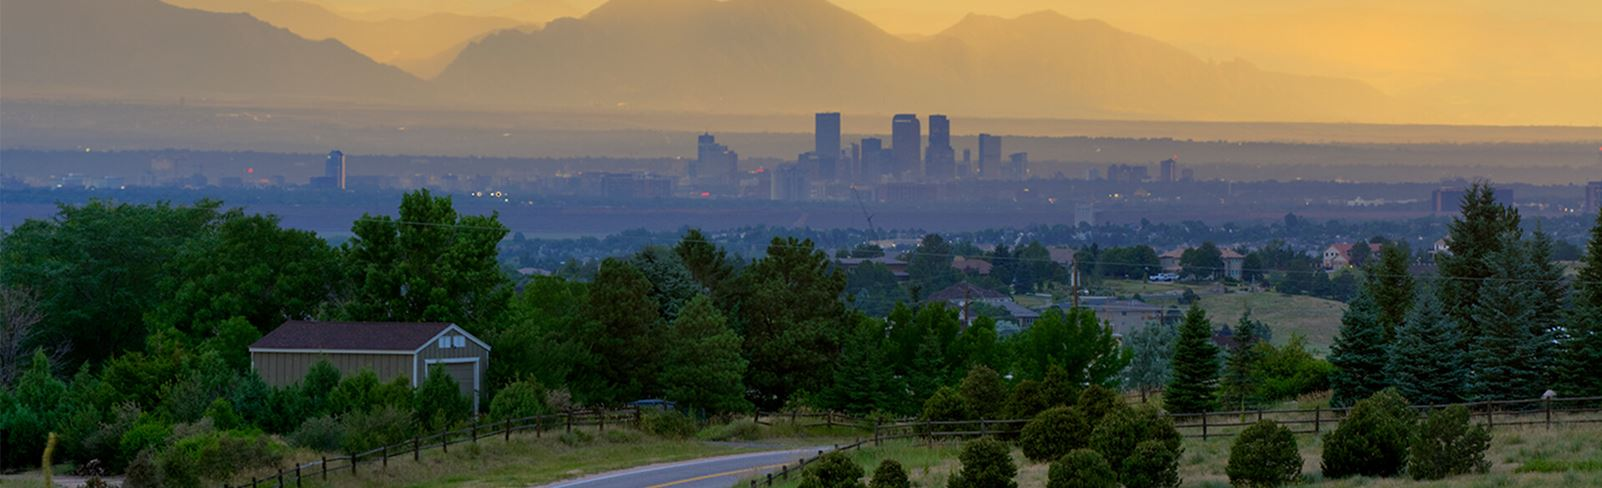 View of Denver from Inspiration Colorado, a new home development Near Denver